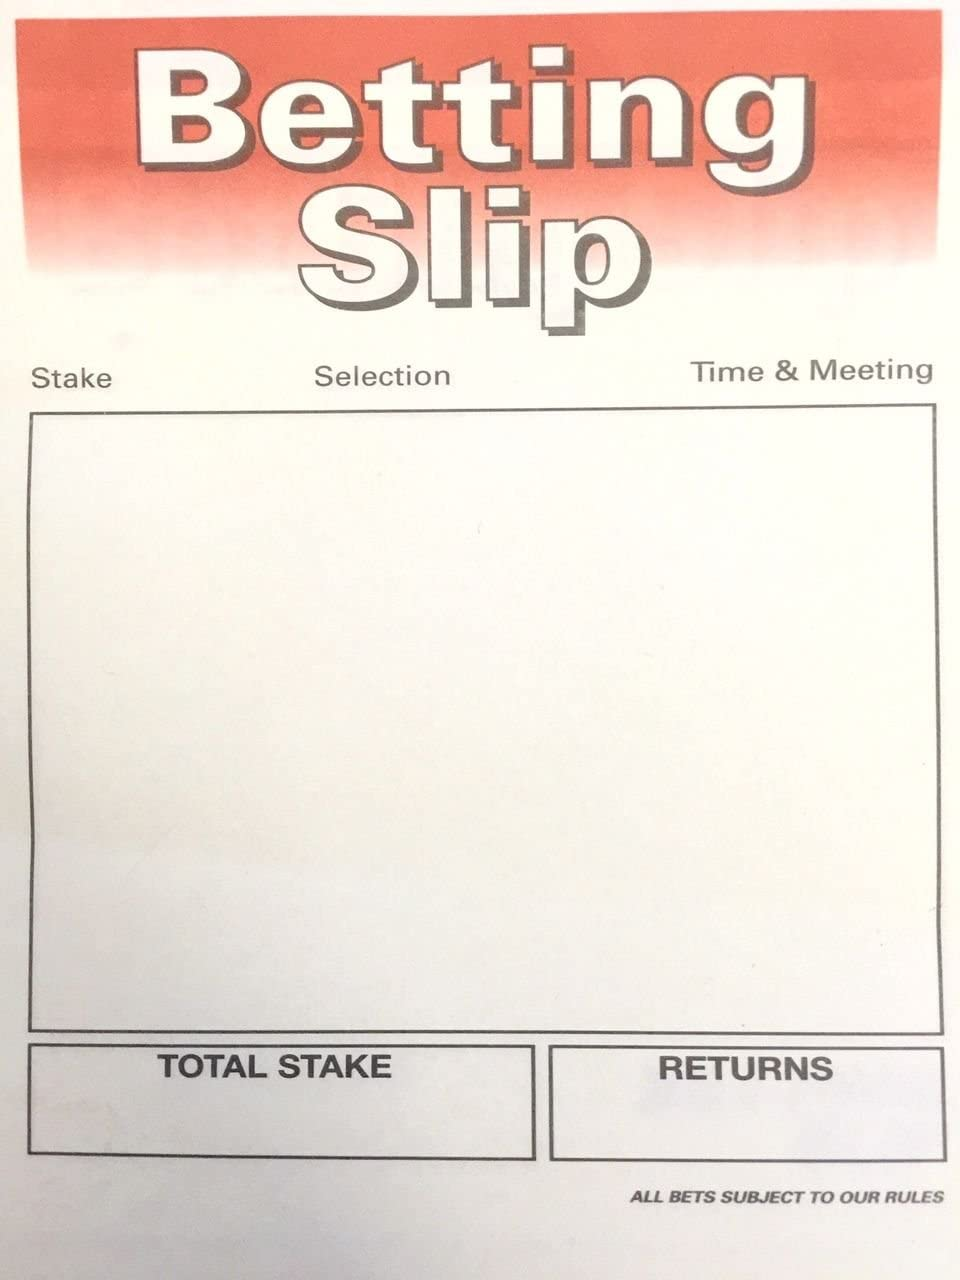 Betting slips for a race night games betting closed correct score predictions